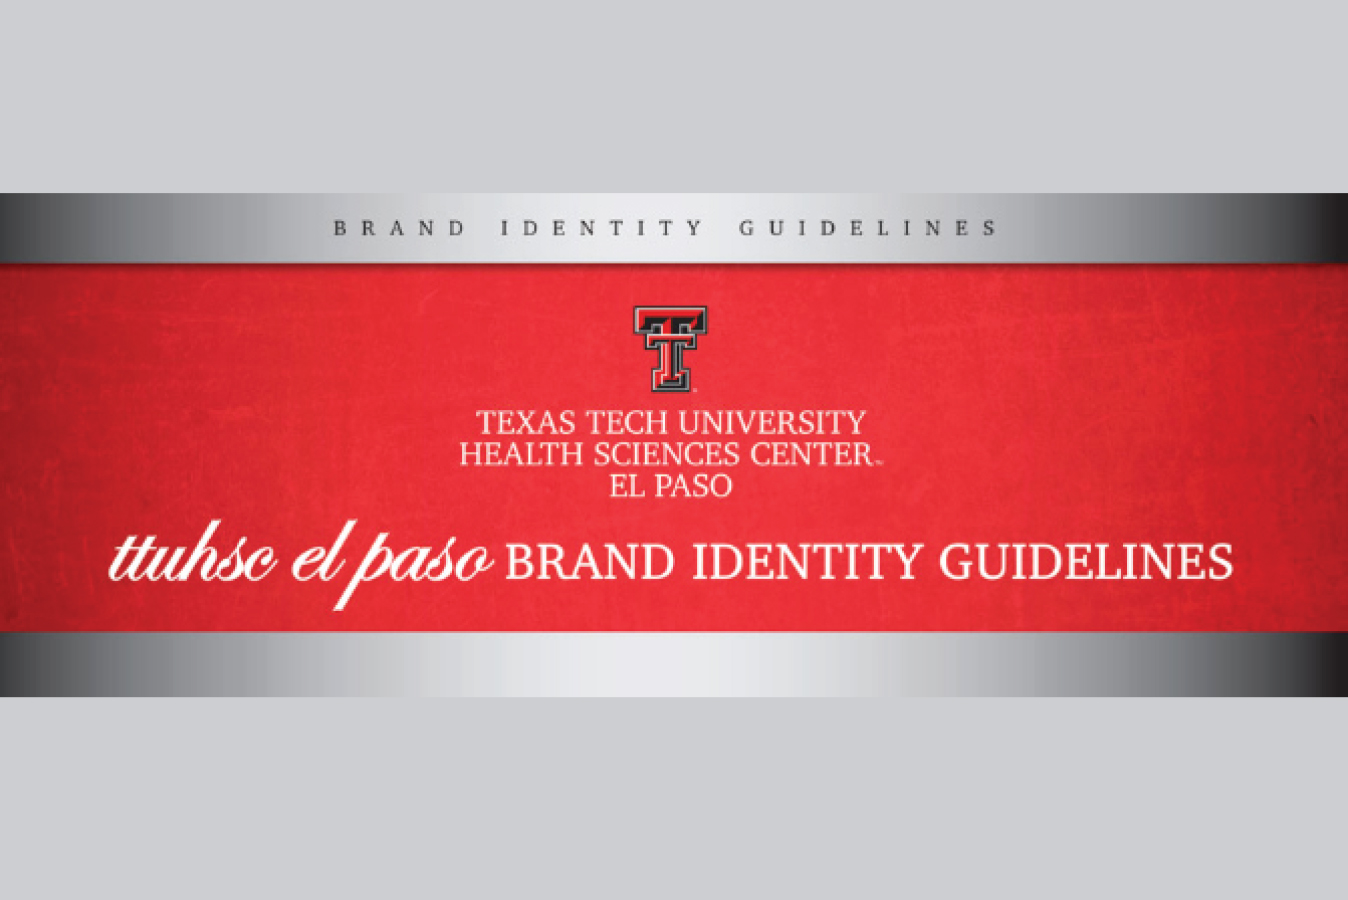 NEW TTUHSC El Paso Identity Guidelines Released